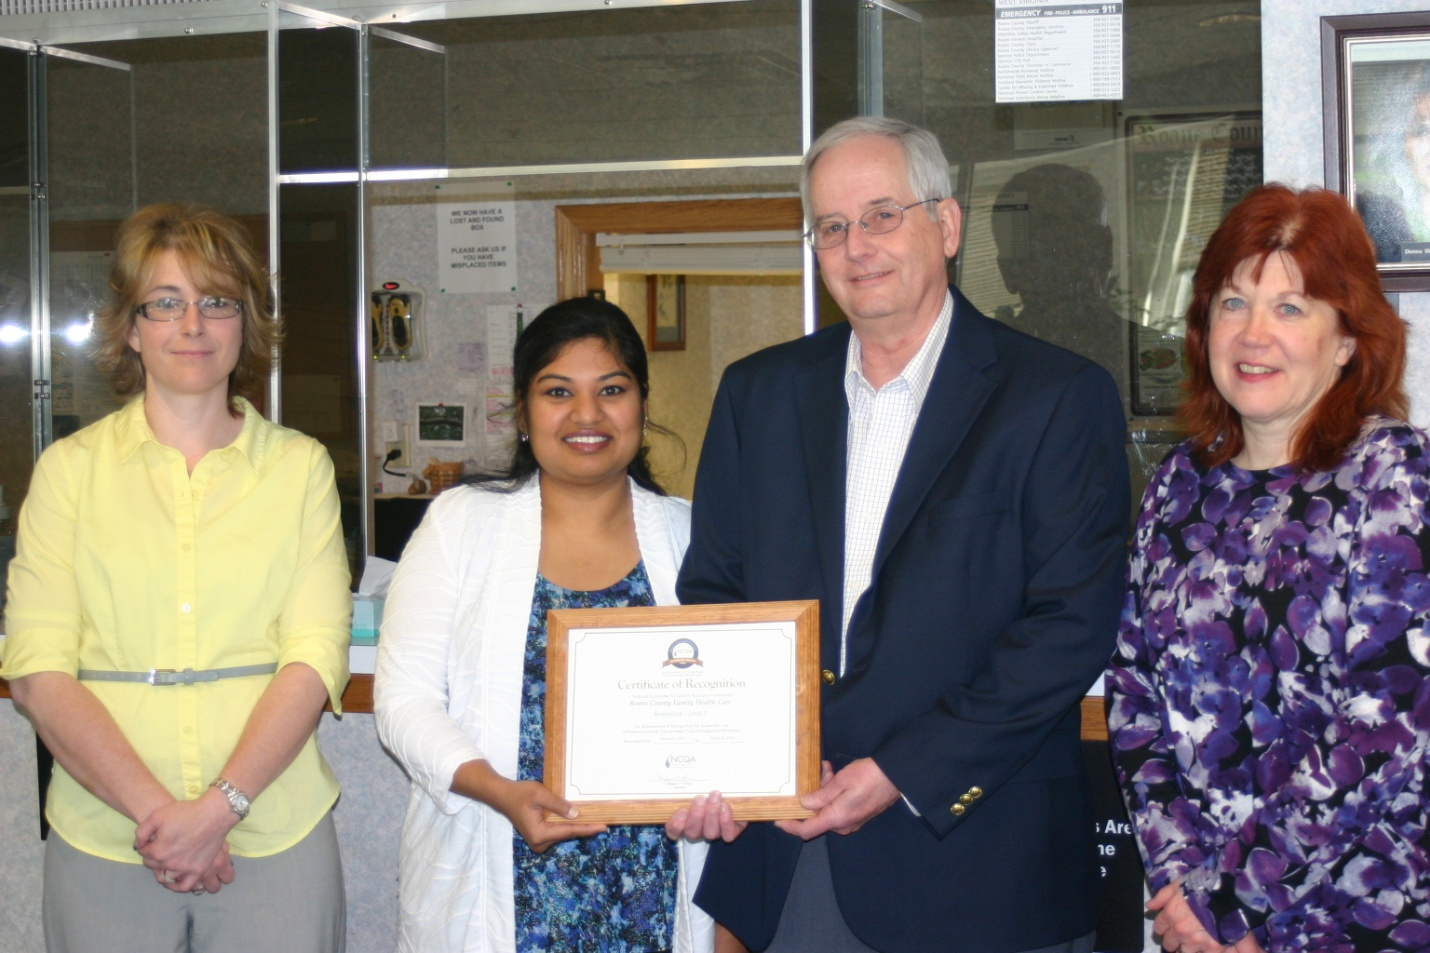 RCFHC Receives Recognition from the PCMH Program